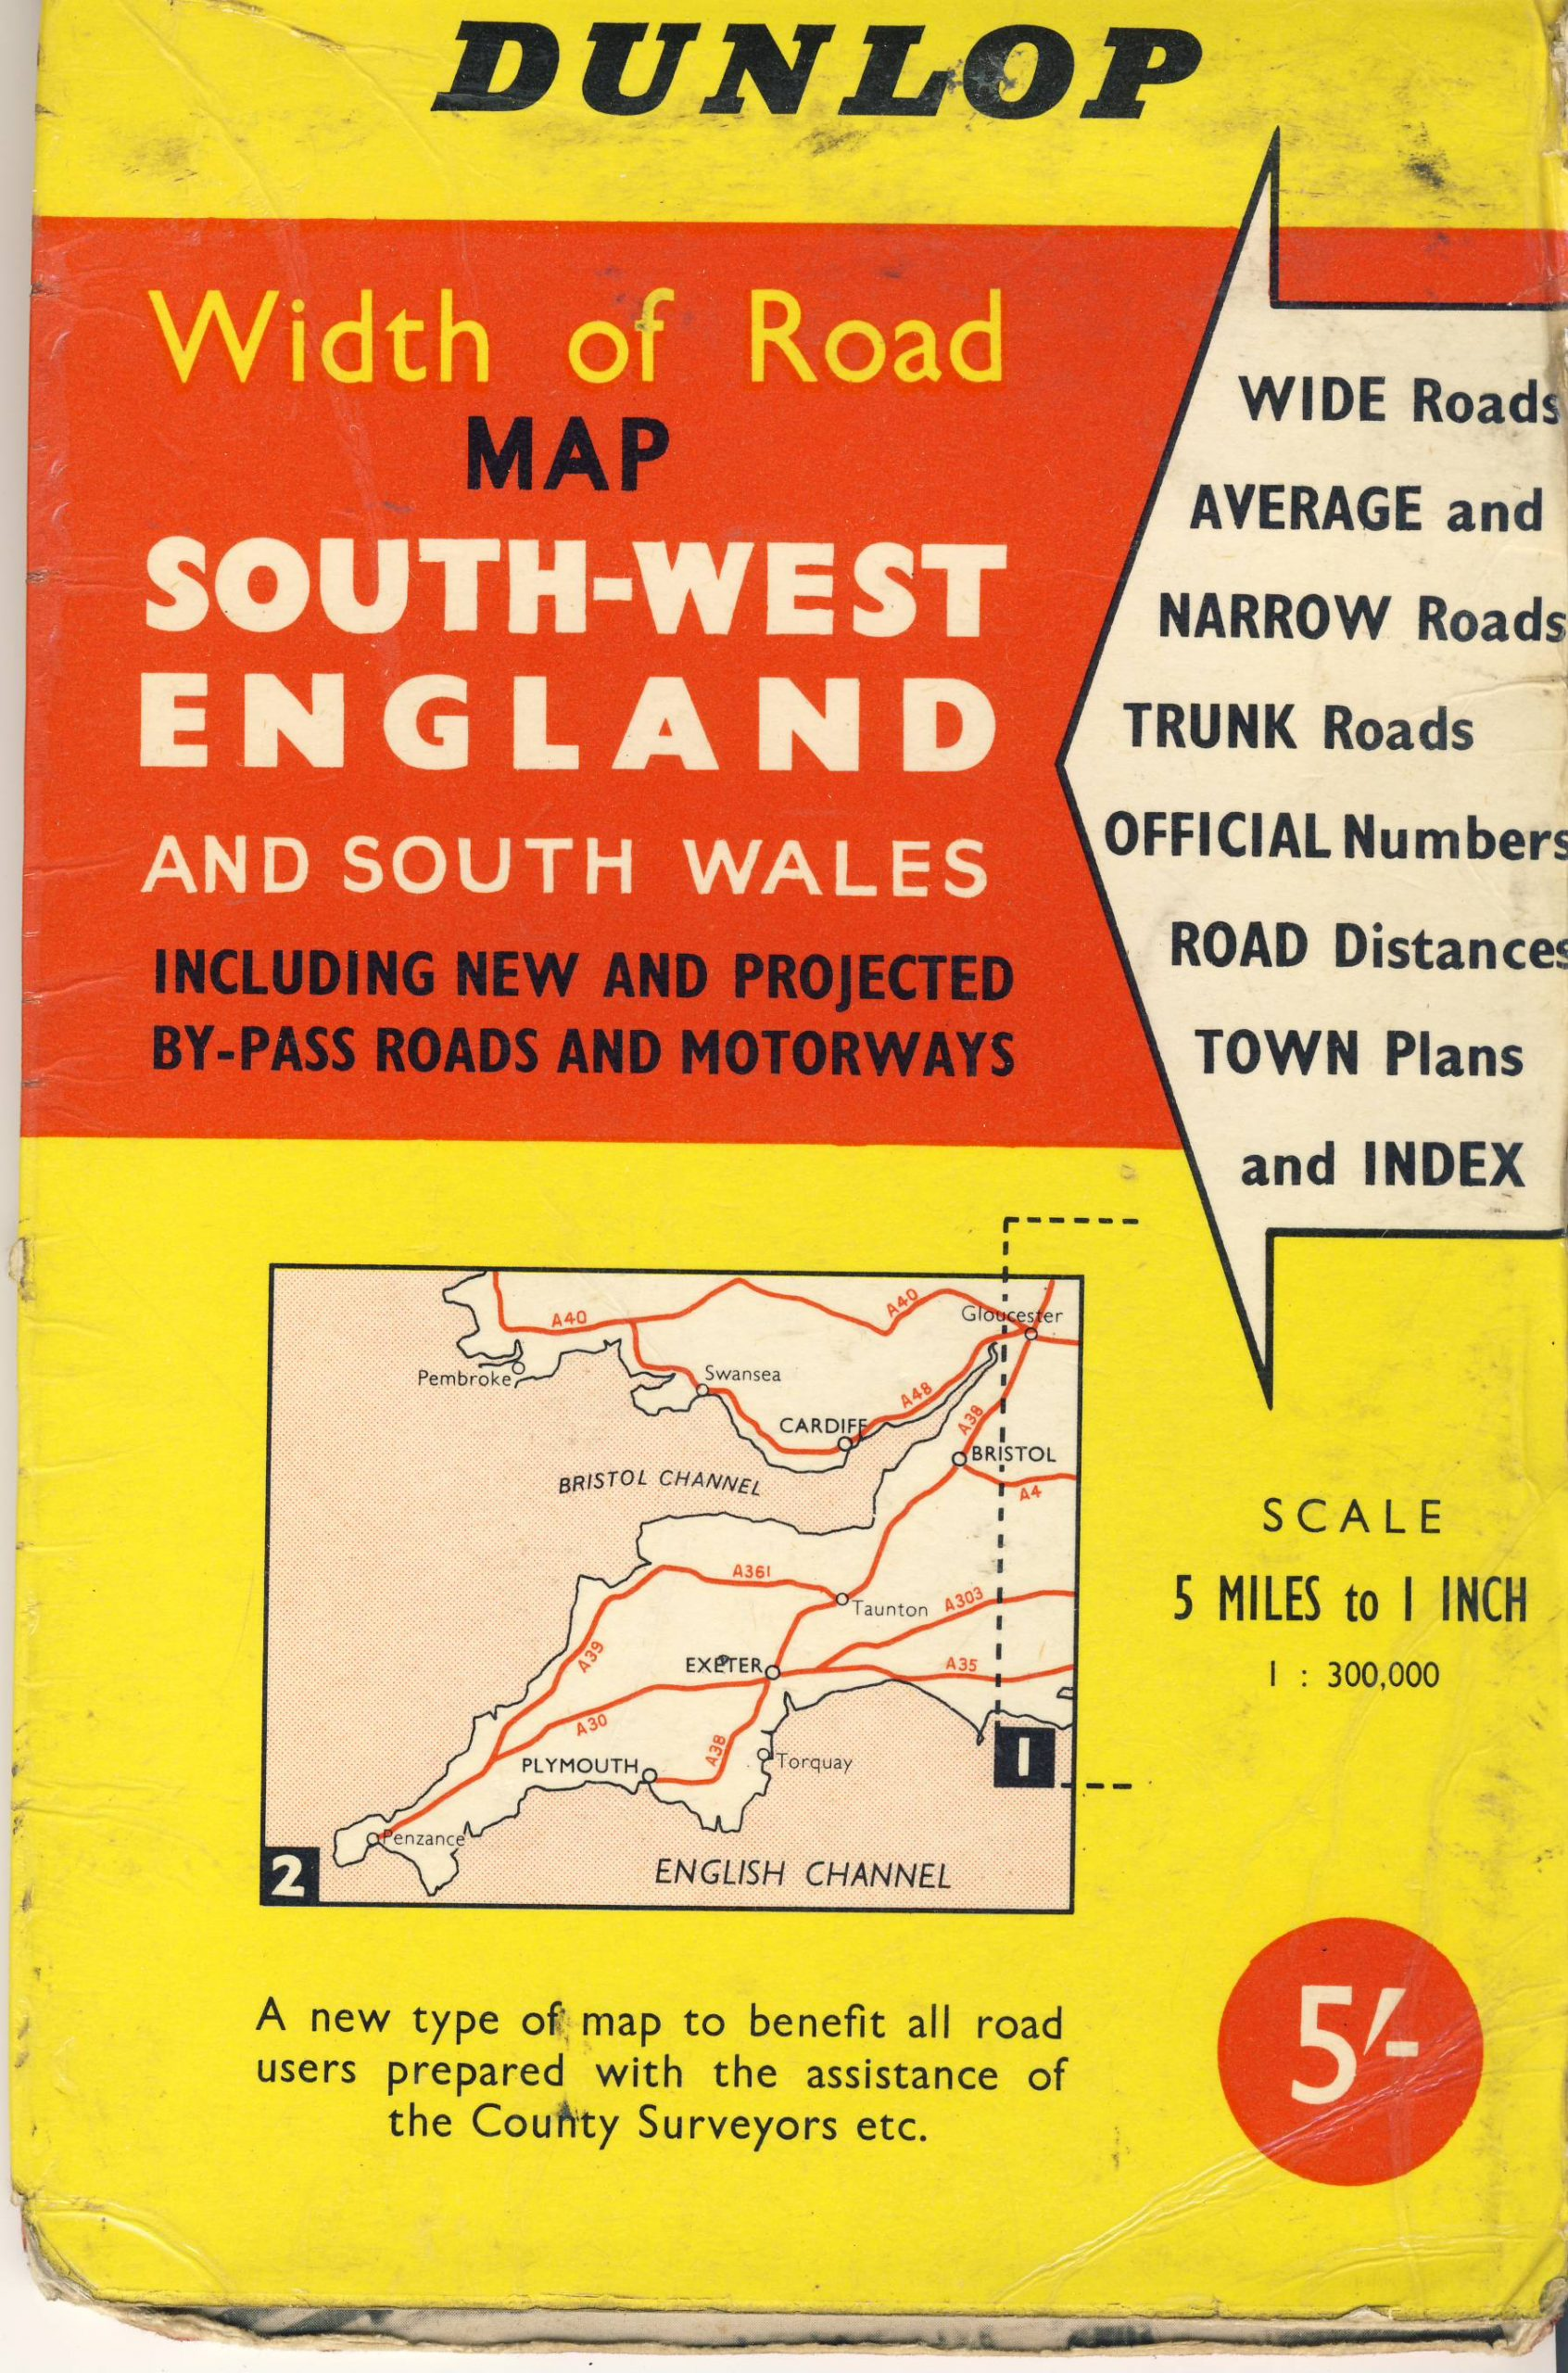 1963 Southwest England and SOUTH WALES DUNLOP Width of Road vintage map refS5 Geographia publication Fleet Street London revised edition 1963 measures approx  23cm x  15cm folded - map on one side - other side is key to town locations - pre-owned in good condition for age and use.